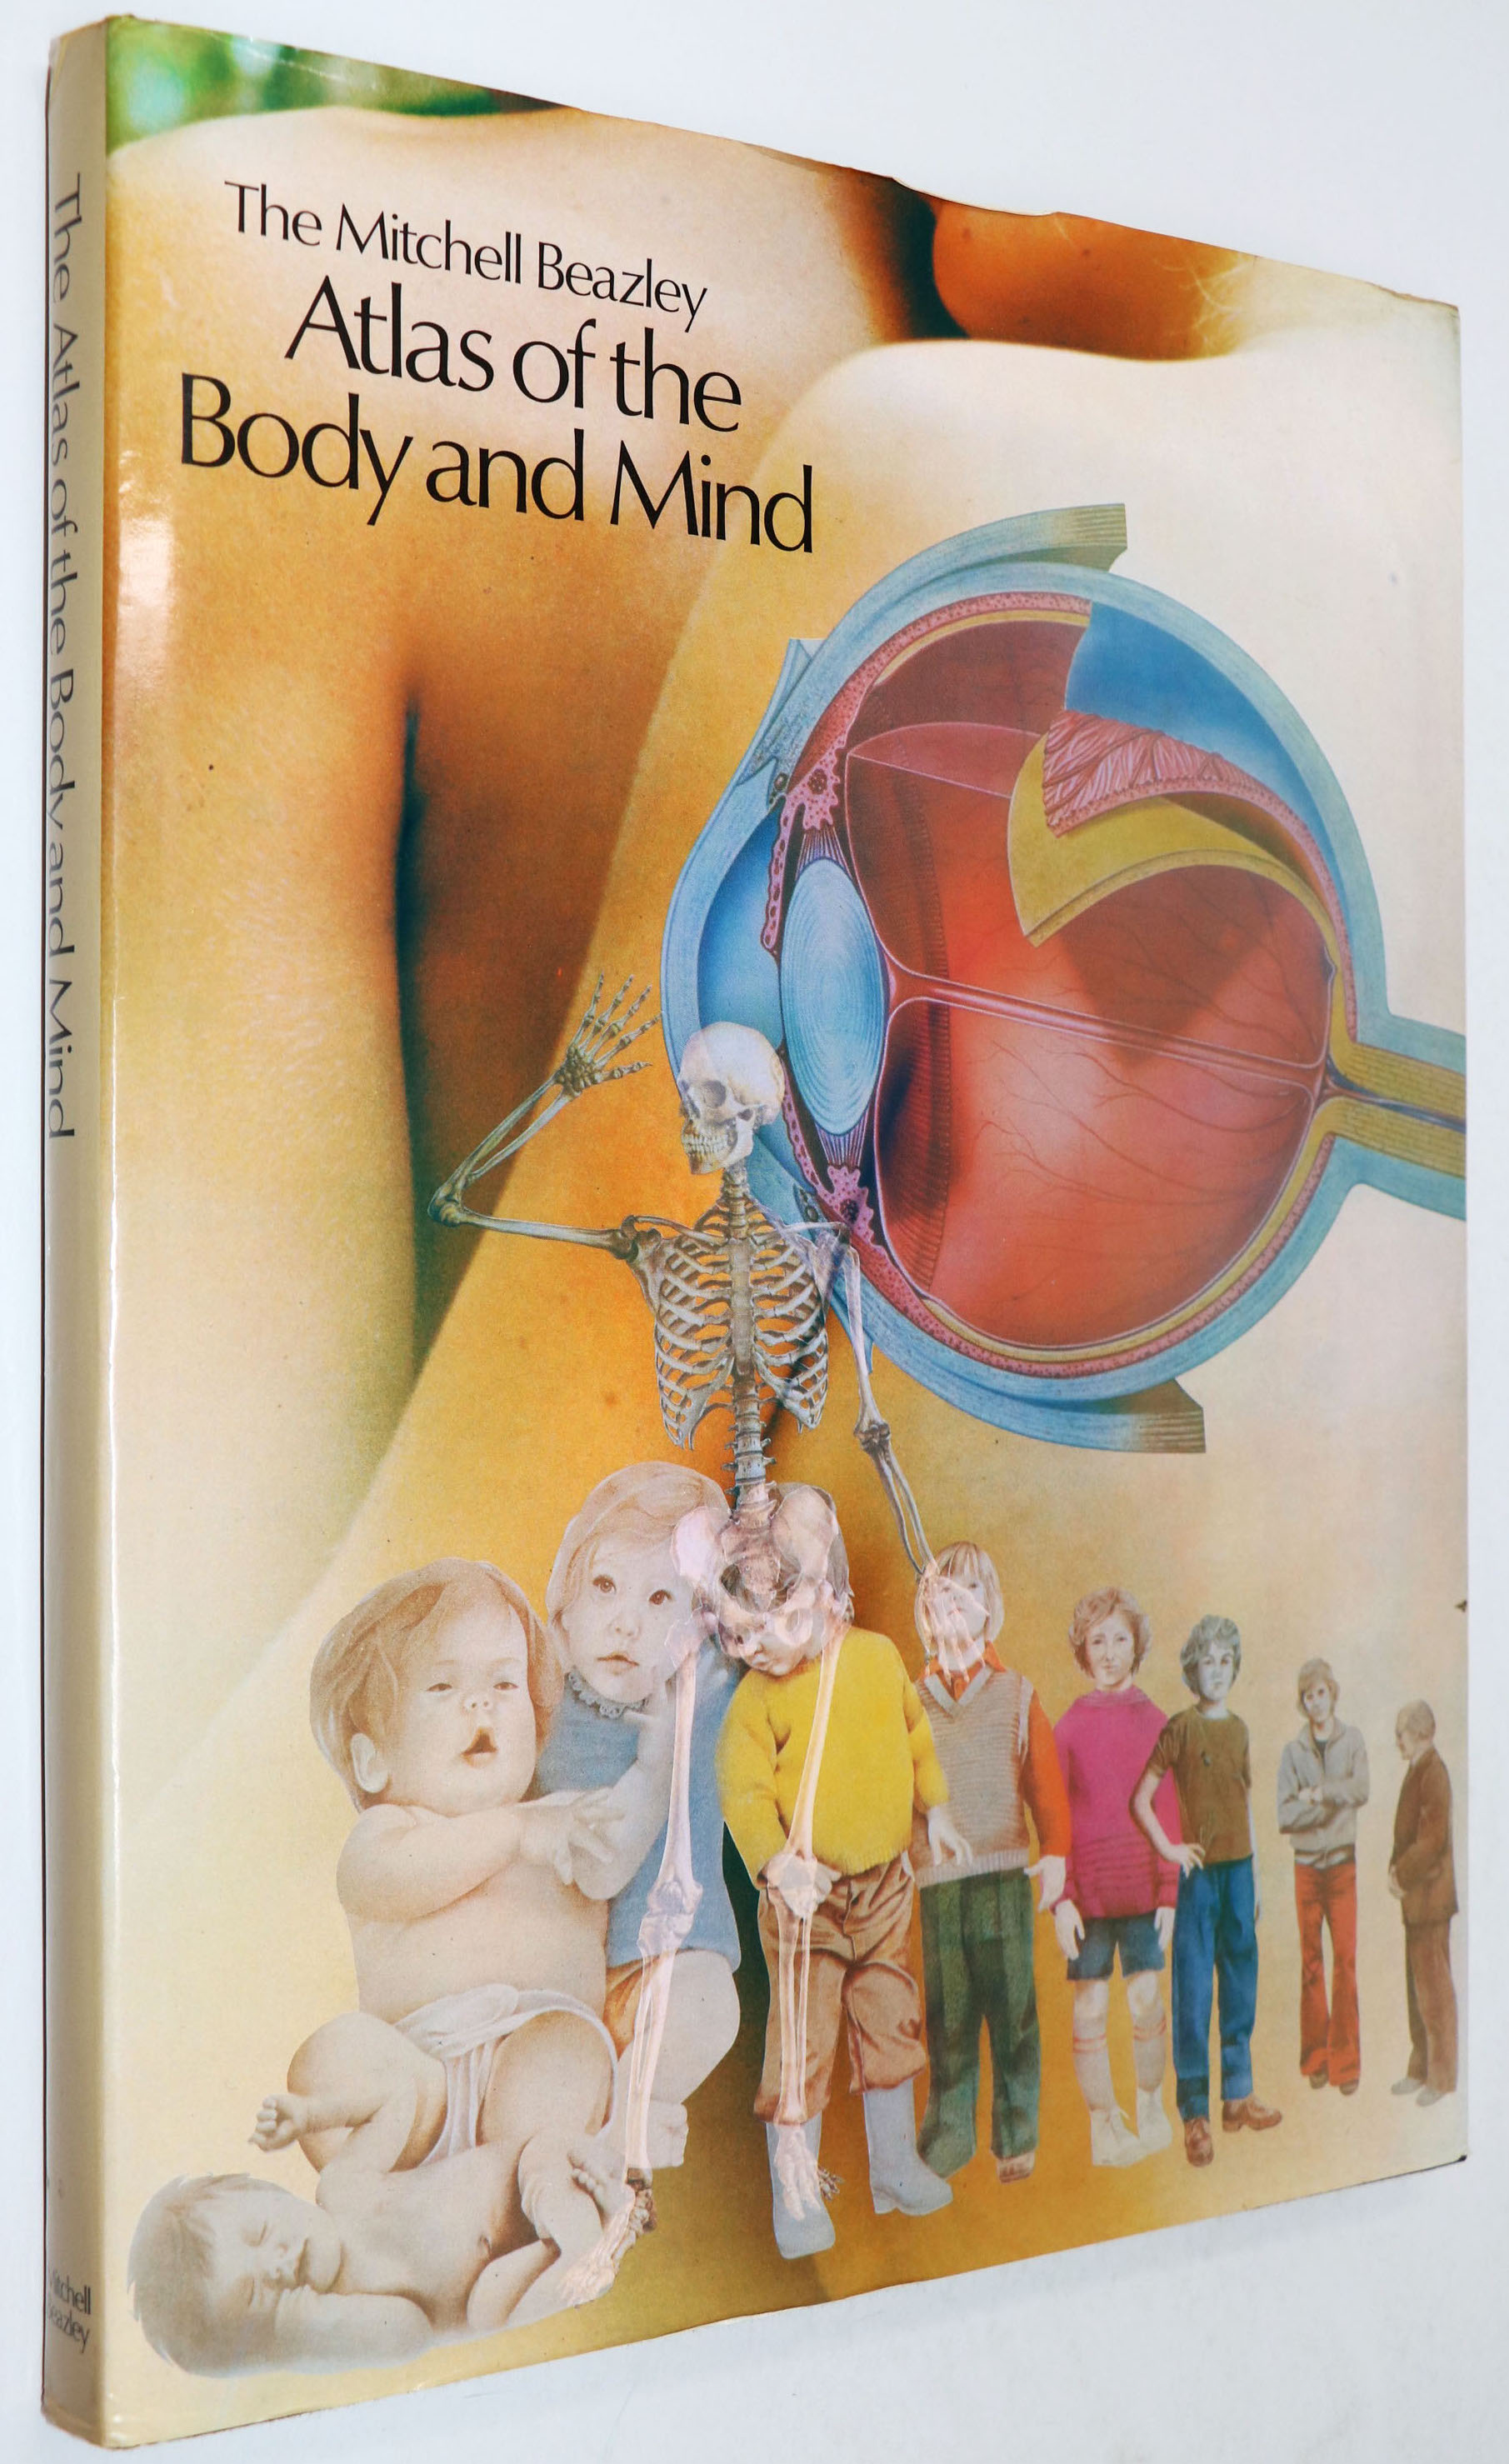 The Mitchell Beazley Atlas of the Body and Mind